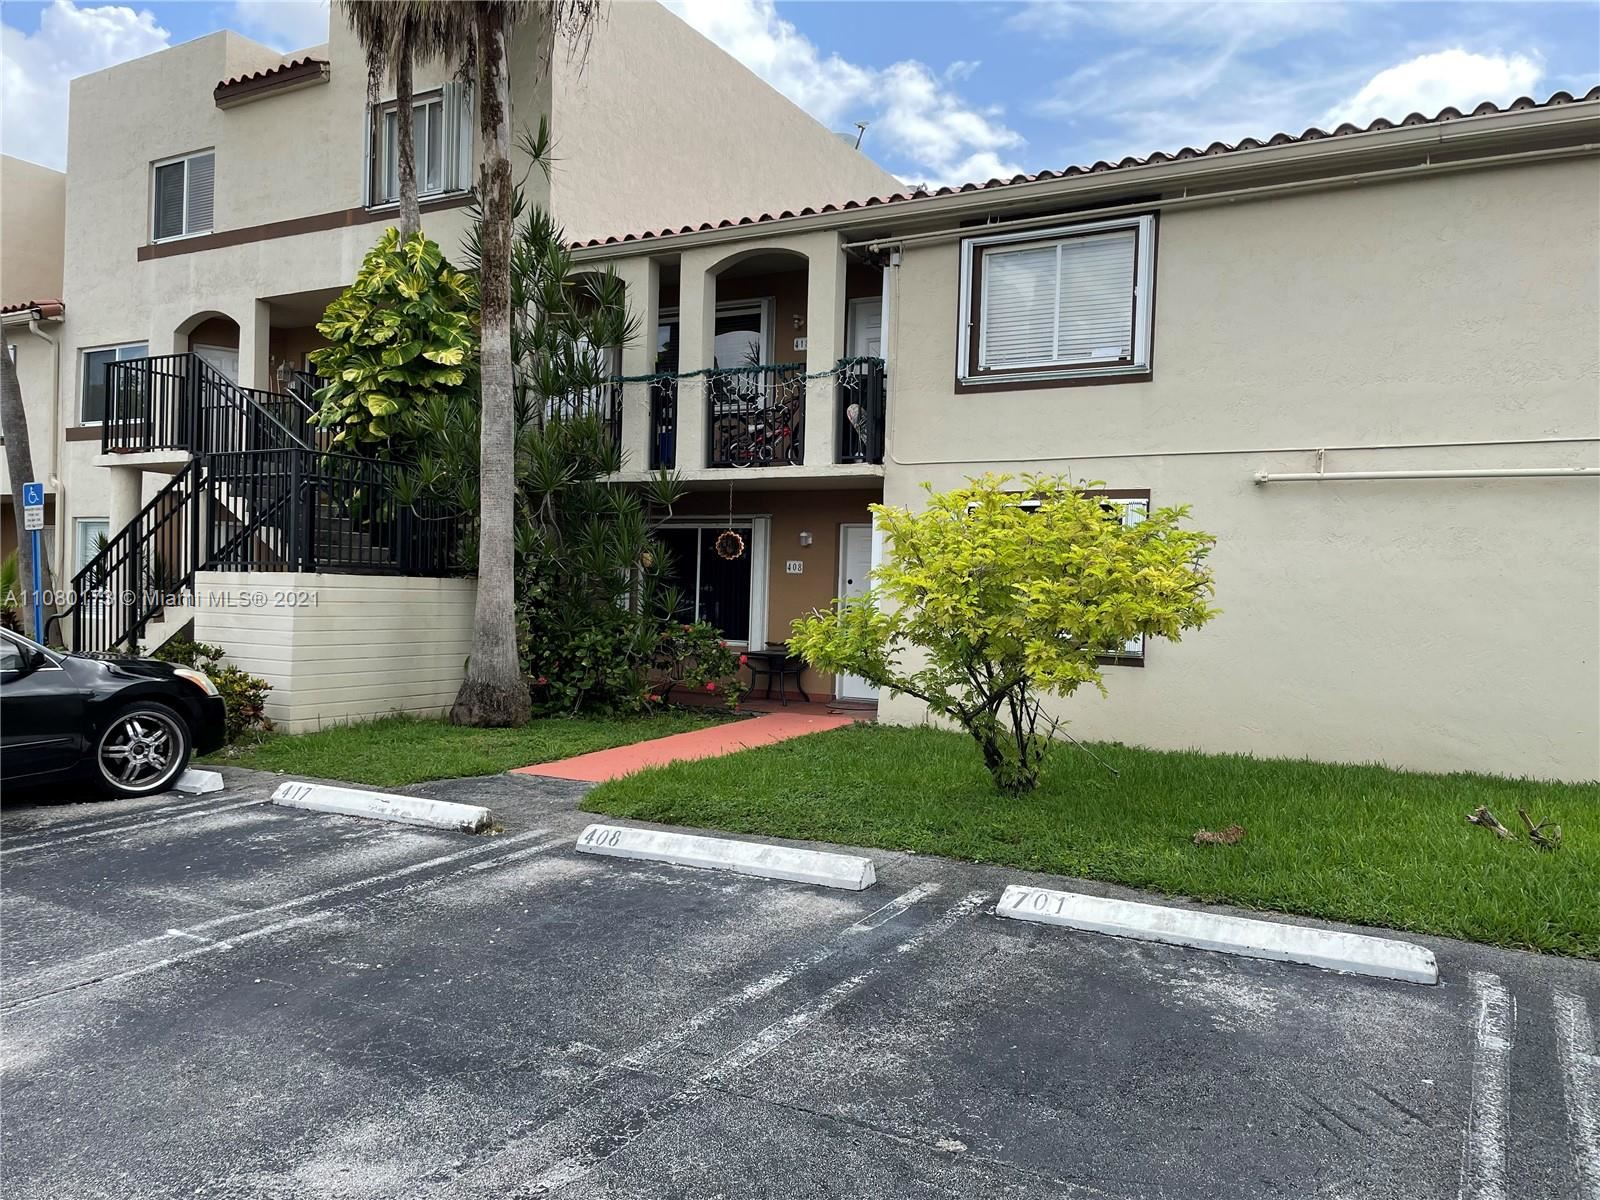 511 NW 82nd Ave #418, Miami, FL 33126 - #: A11080173